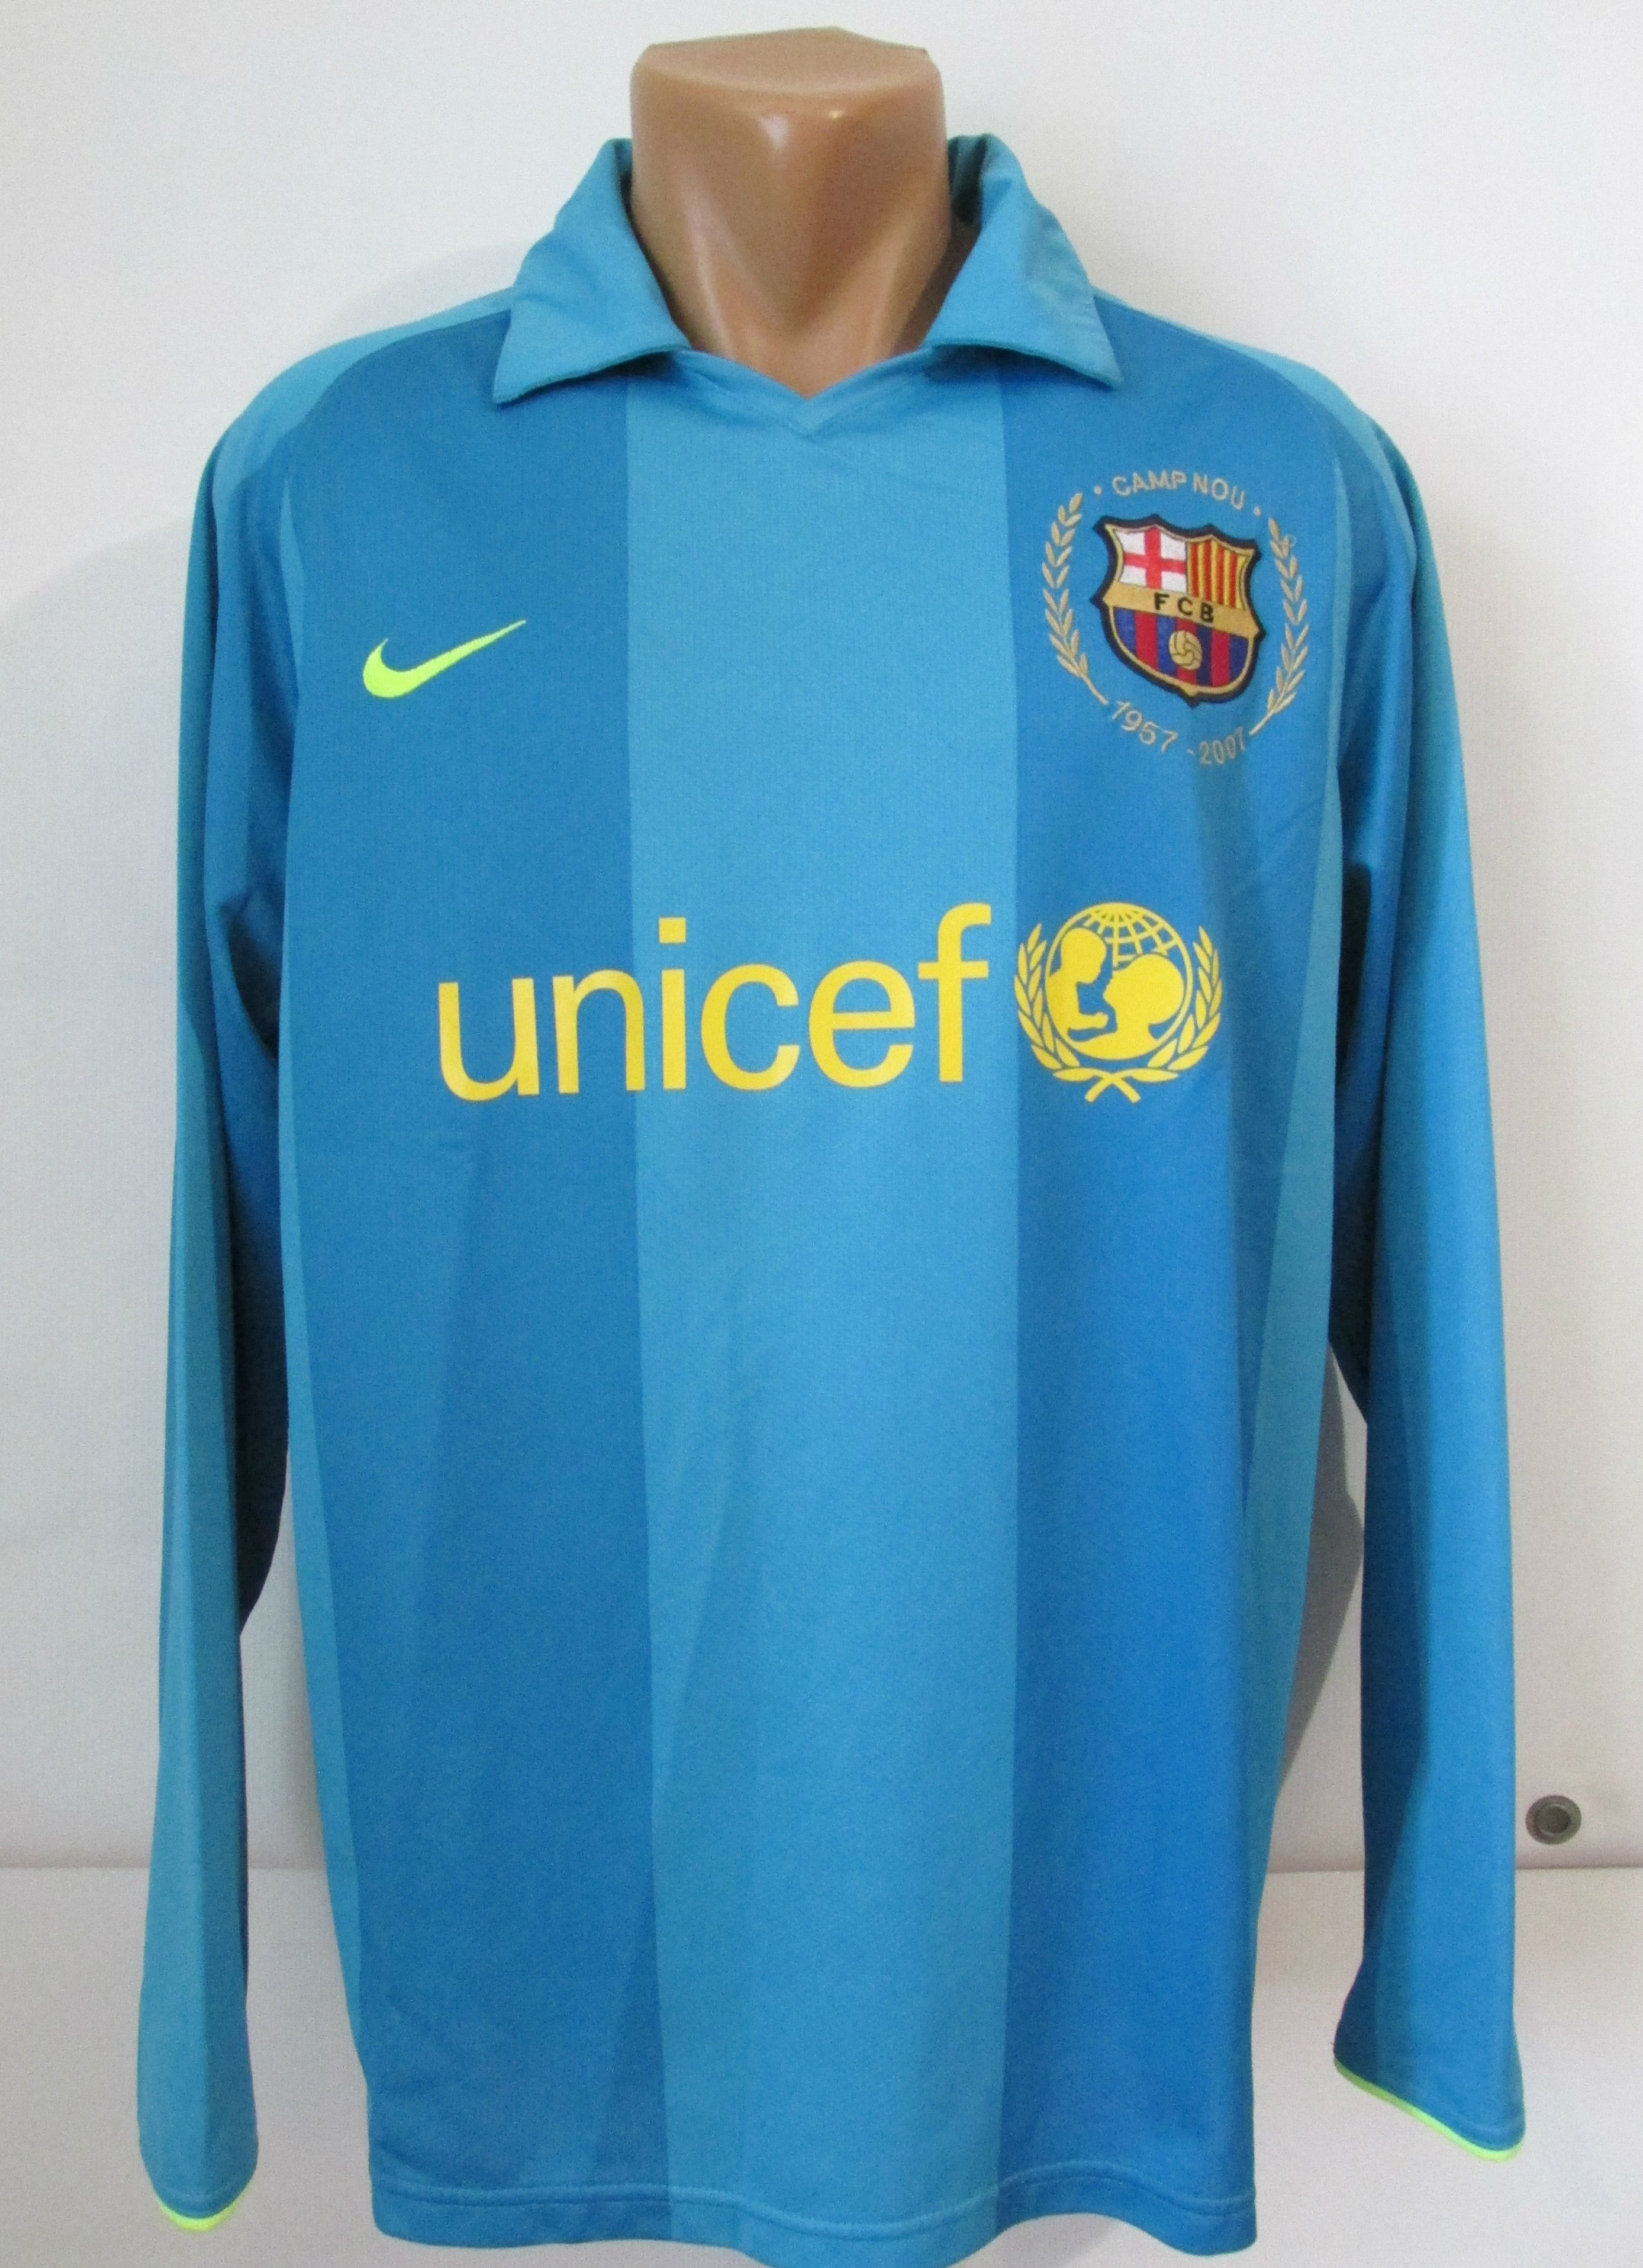 c2d5fe93803 Barcelona 2007/2008 away player issue football shirt by Nike FCB Barca  FCBarca jersey camiseta soccer #barcelona #barca #fcb #nike #playerissue  #longsleeve ...